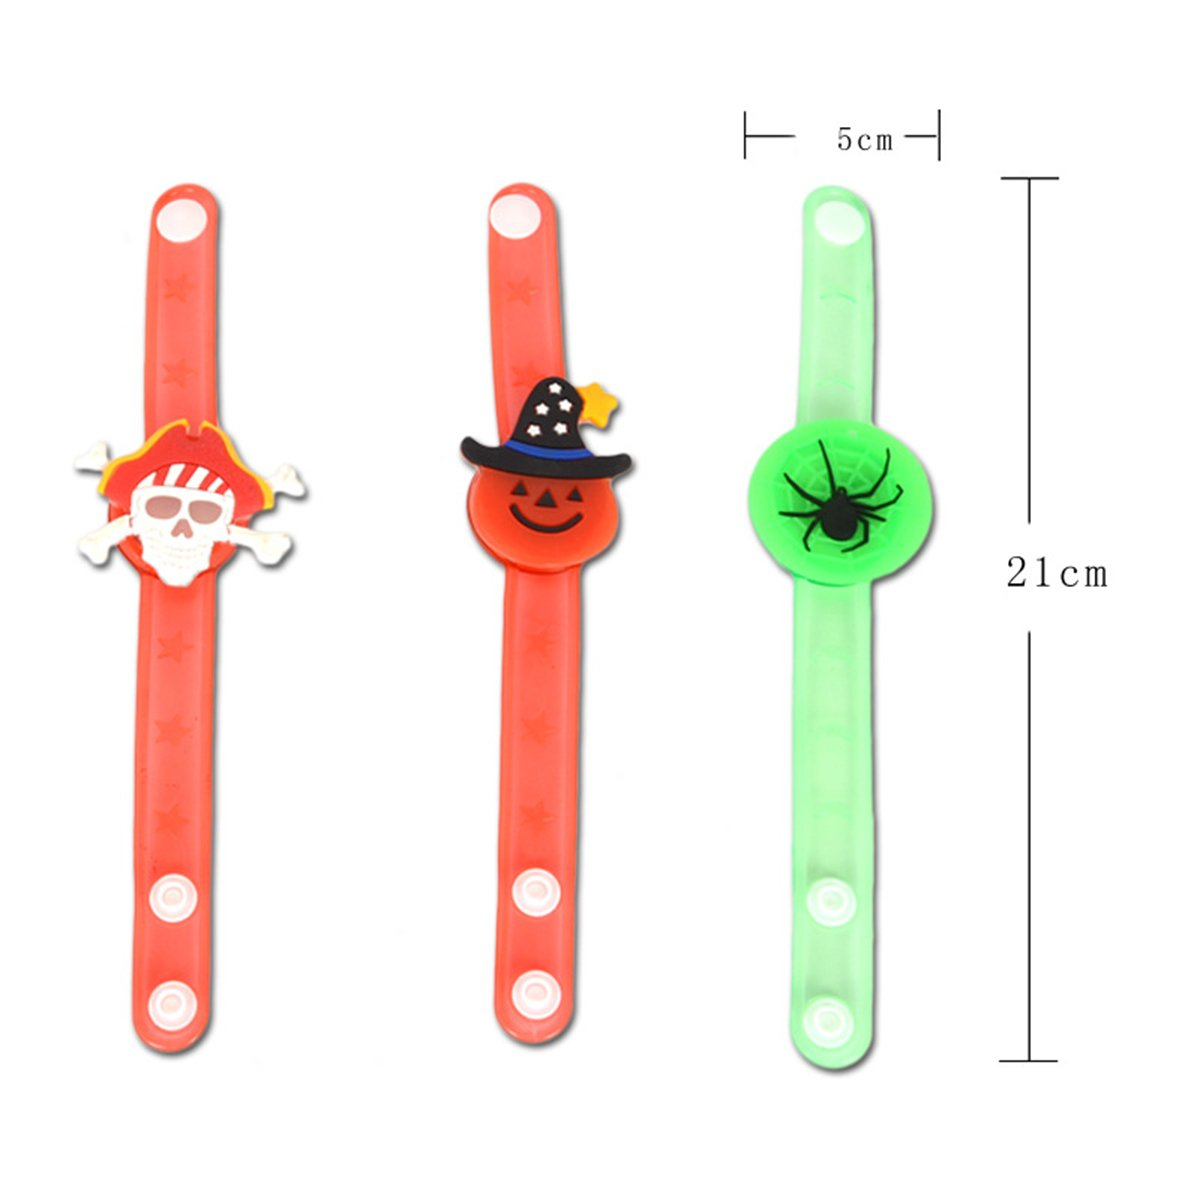 YeahiBaby 6Pcs Light up Bracelets Party Favor Light Up Wristbands for Halloween Chritmas Festival Dance Party by YeahiBaby (Image #5)